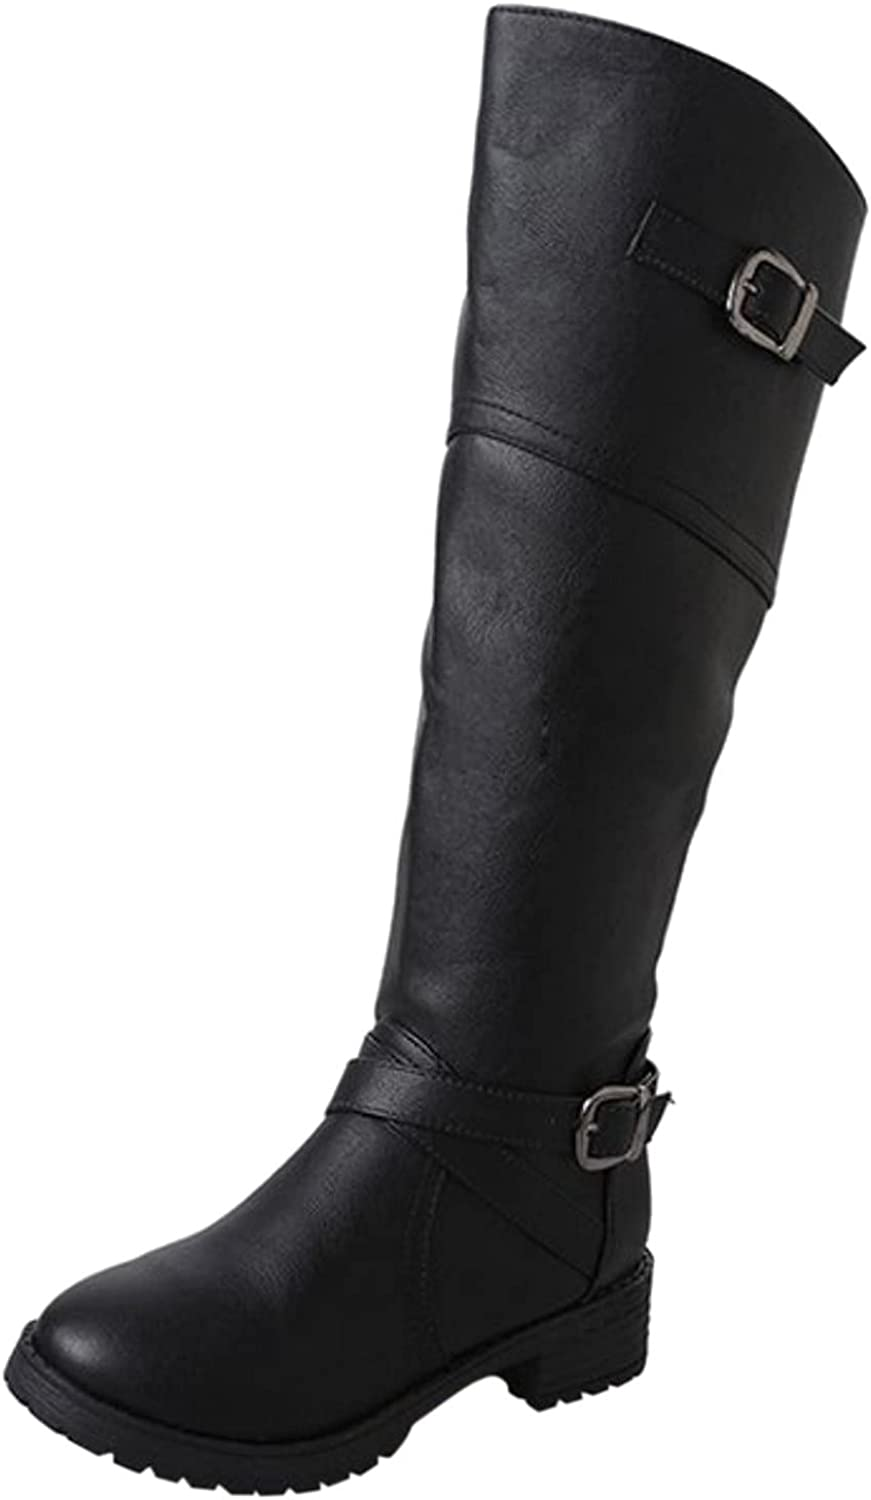 Boots For Women Leather Boots High Heel Mid-heel Retro Buckle Rider Boots Long Boots Shoes